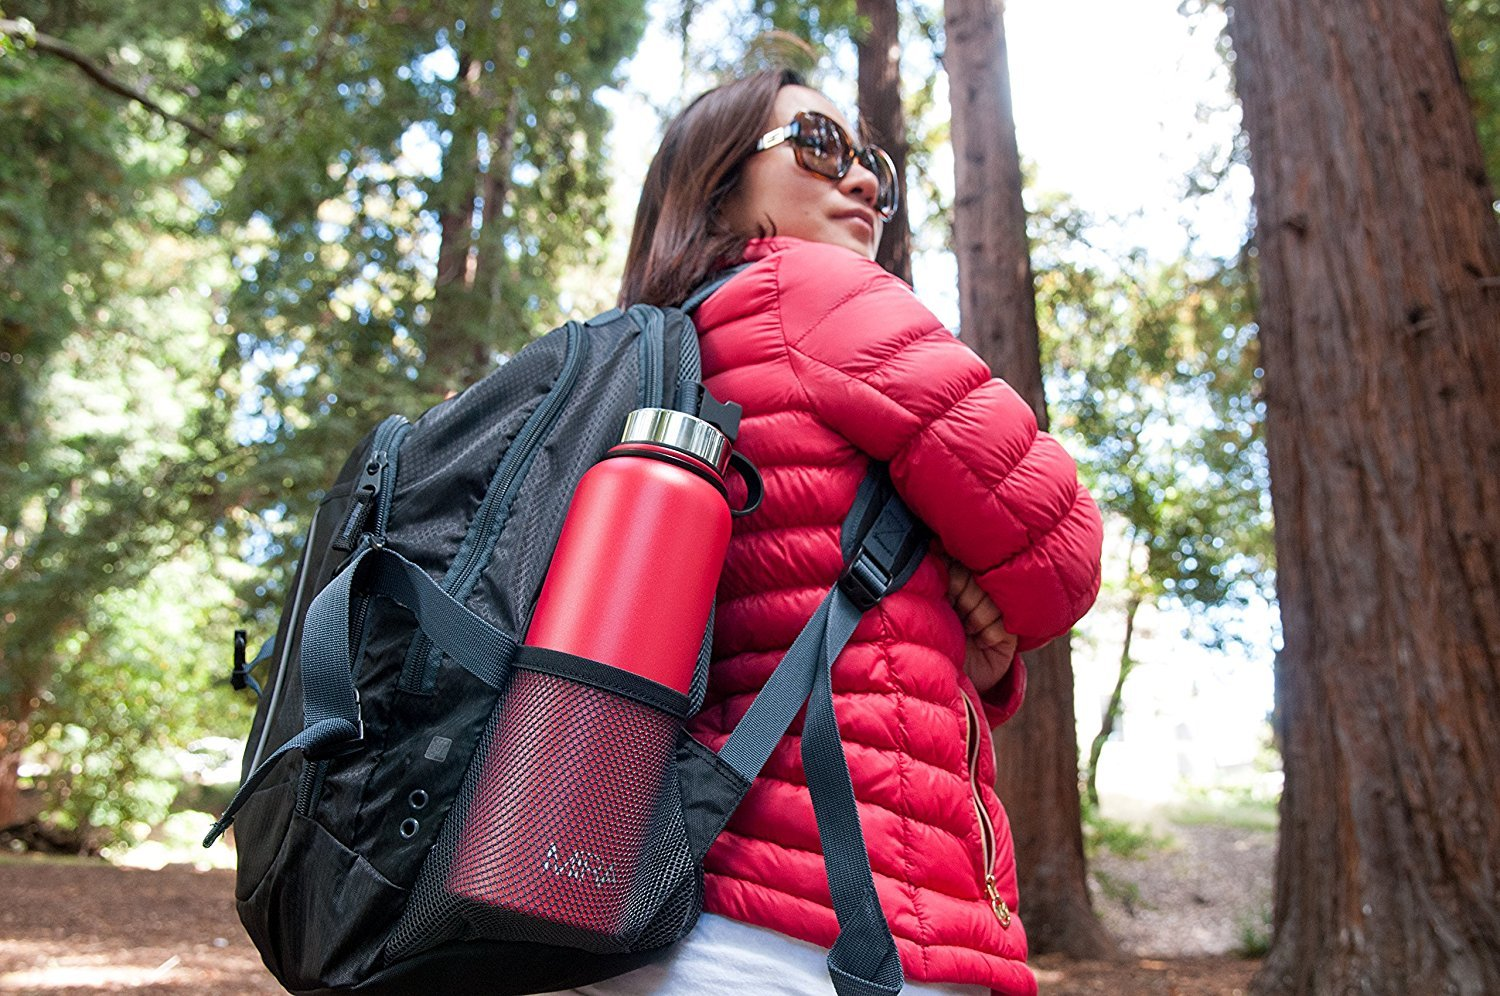 MIRA Stainless Steel Vacuum Insulated Wide Mouth Water Bottle | Thermos  Flask Keeps Water Stay Cold for 24 hours, Hot for 12 hours | Metal Bottle  with